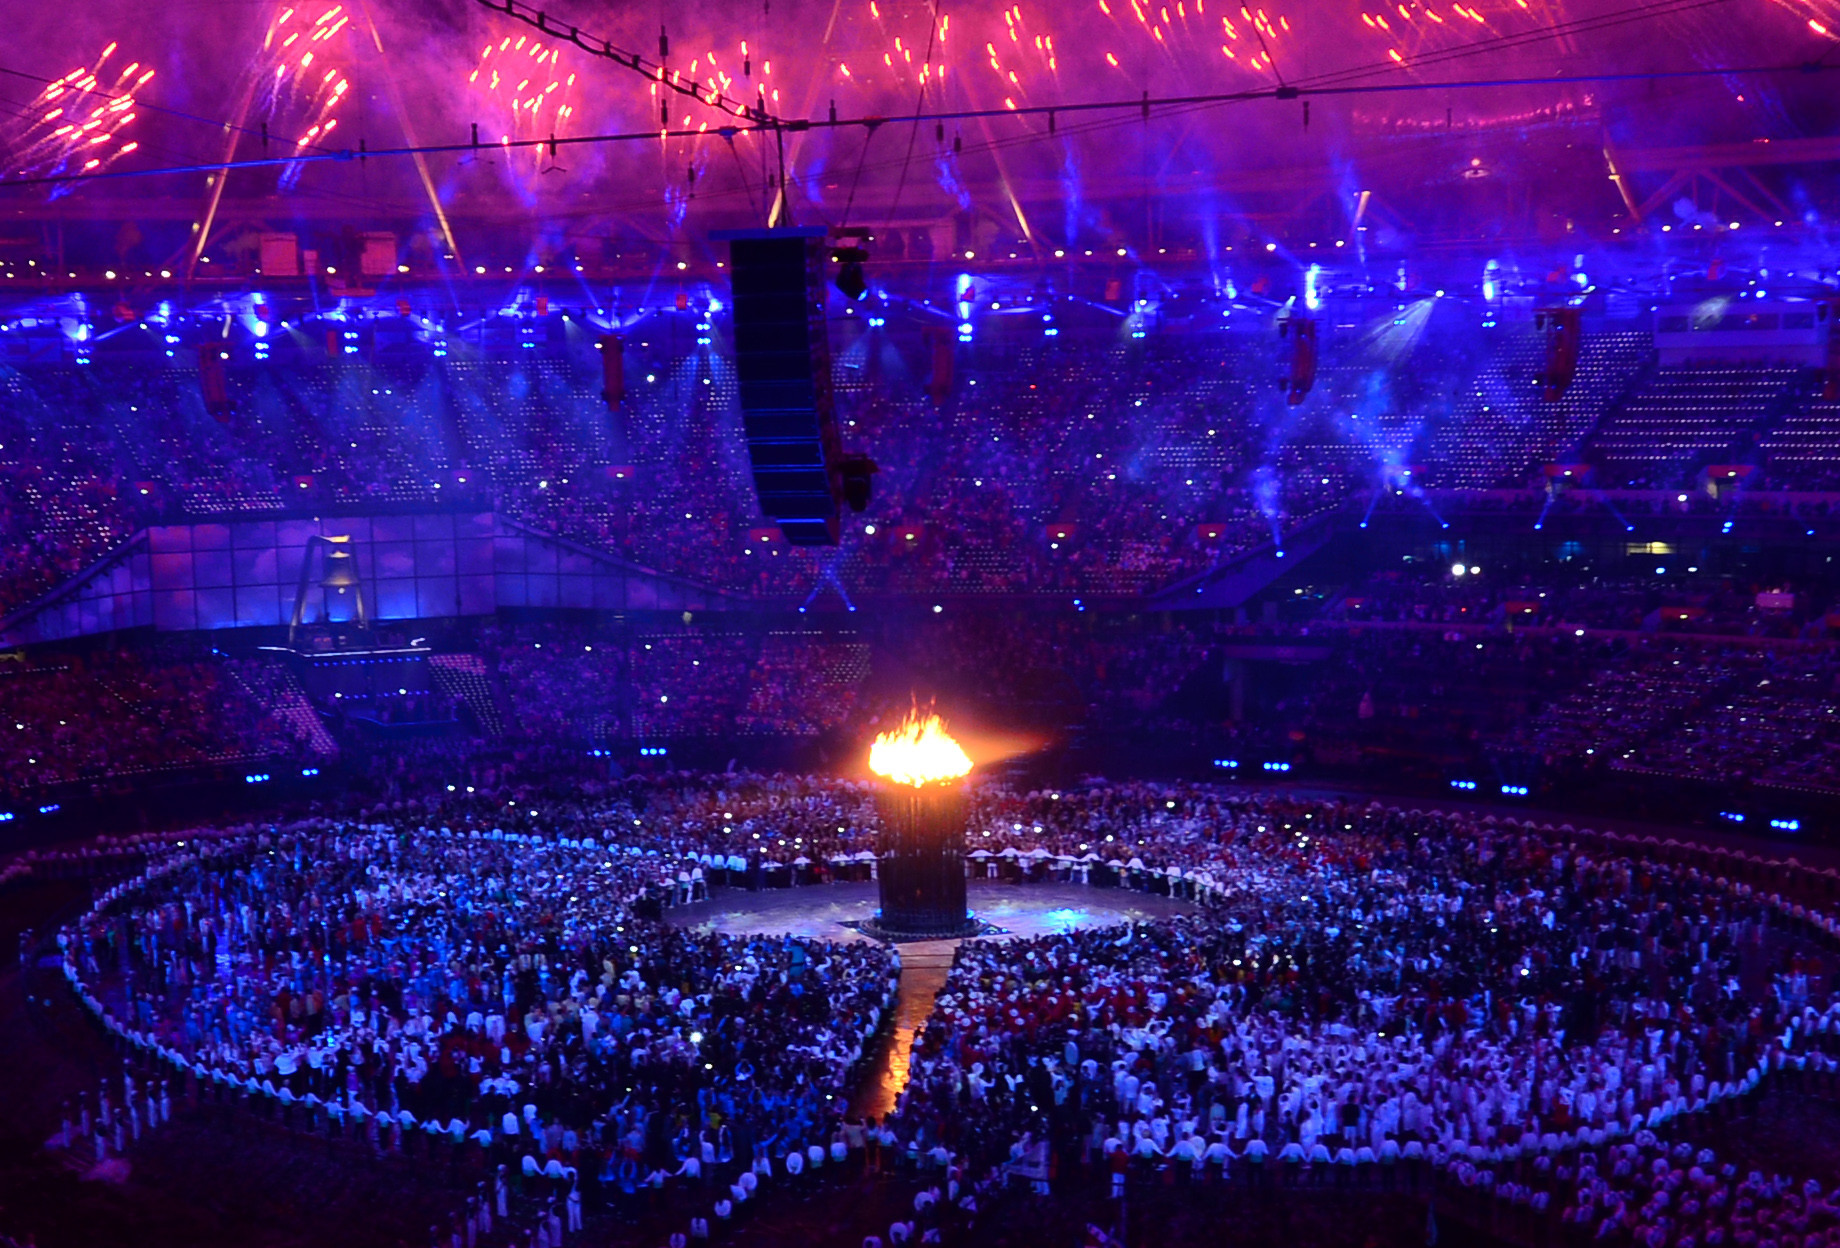 Tokyo 2020 confirms it will use Olympic flame cauldrons in stadium and on the waterfront